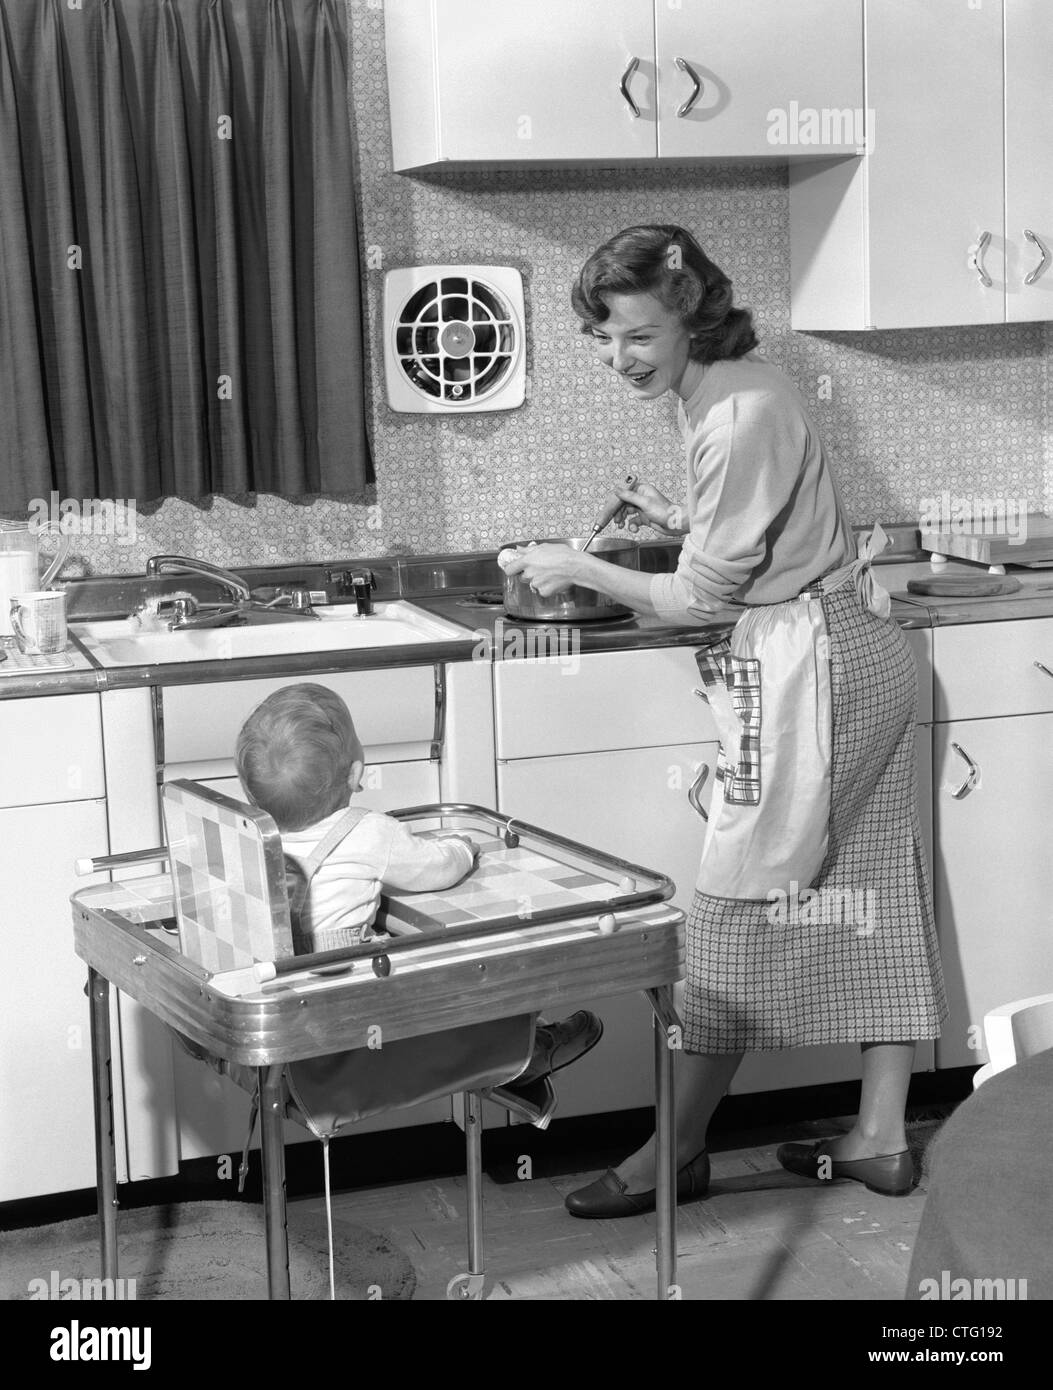 1950s WOMAN MOTHER IN HOME KITCHEN COOKING POT ON STOVE SMILING AT BABY CHILD IN HIGH CHAIR Stock Photo